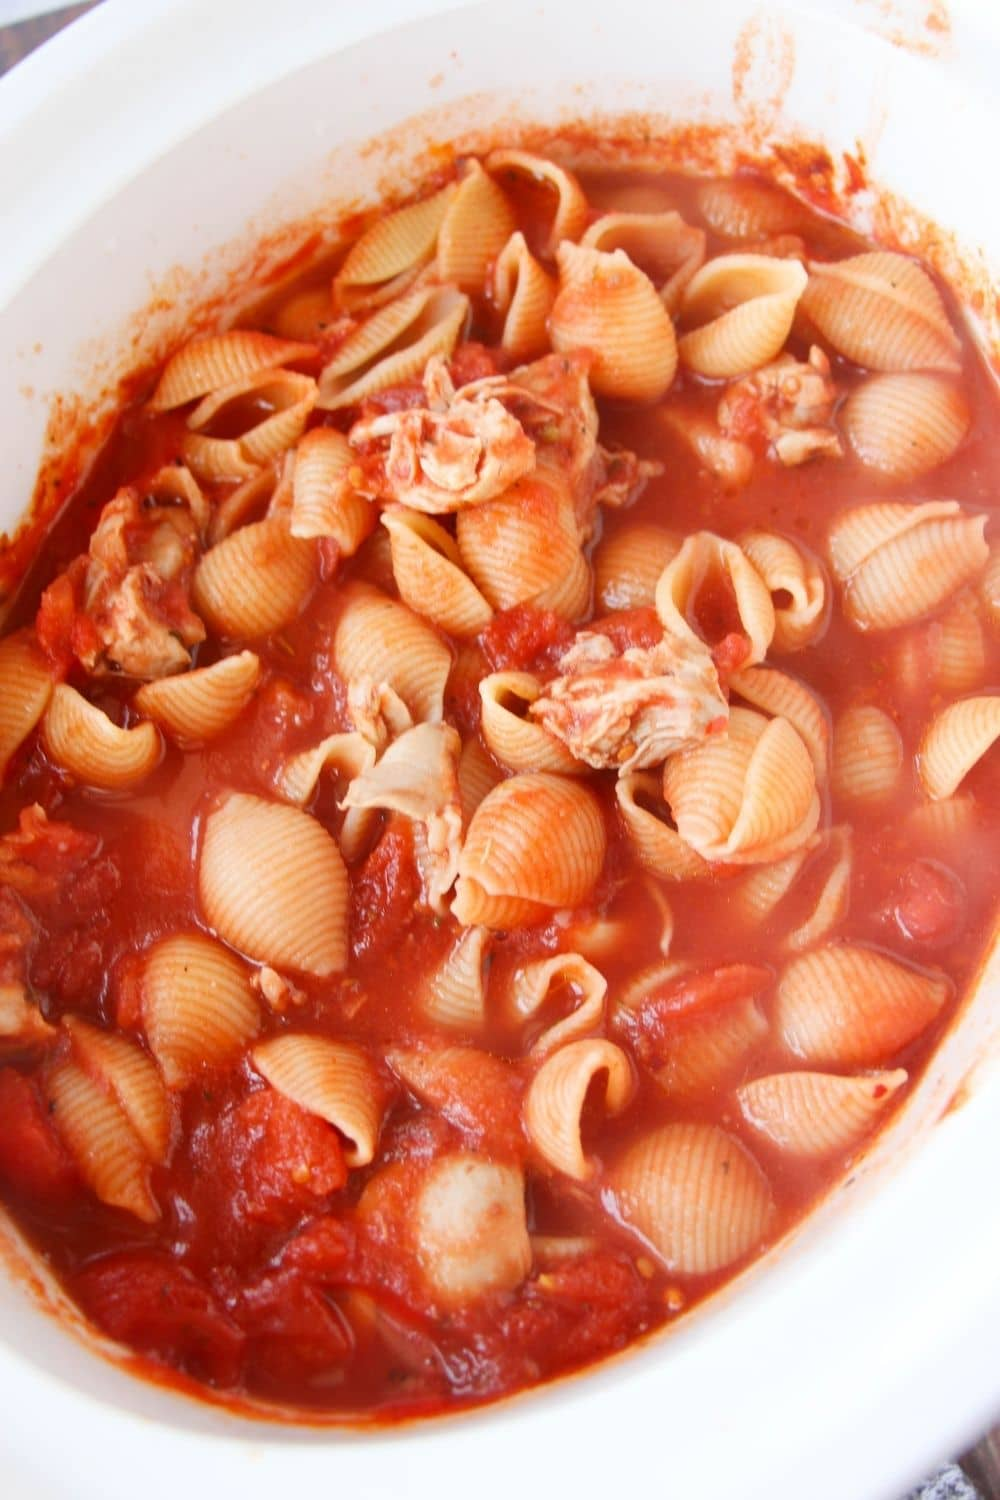 dry pasta in crockpot with tomato sauce and chicken